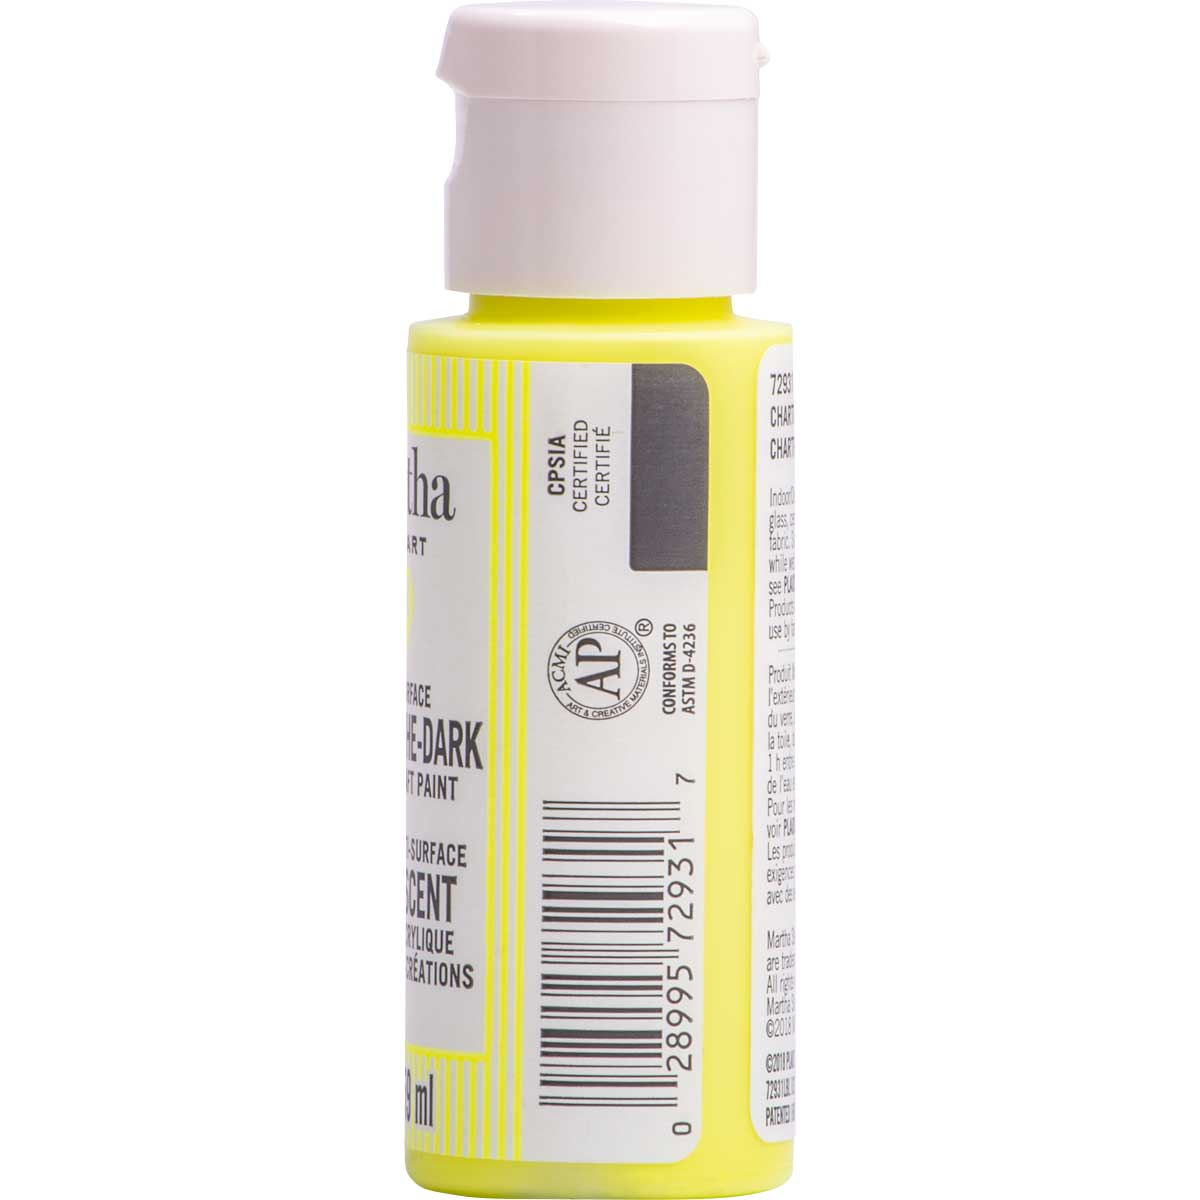 Martha Stewart ® Multi-Surface Glow-in-the-Dark Acrylic Craft Paint CPSIA - Chartreuse, 2 oz. - 7293